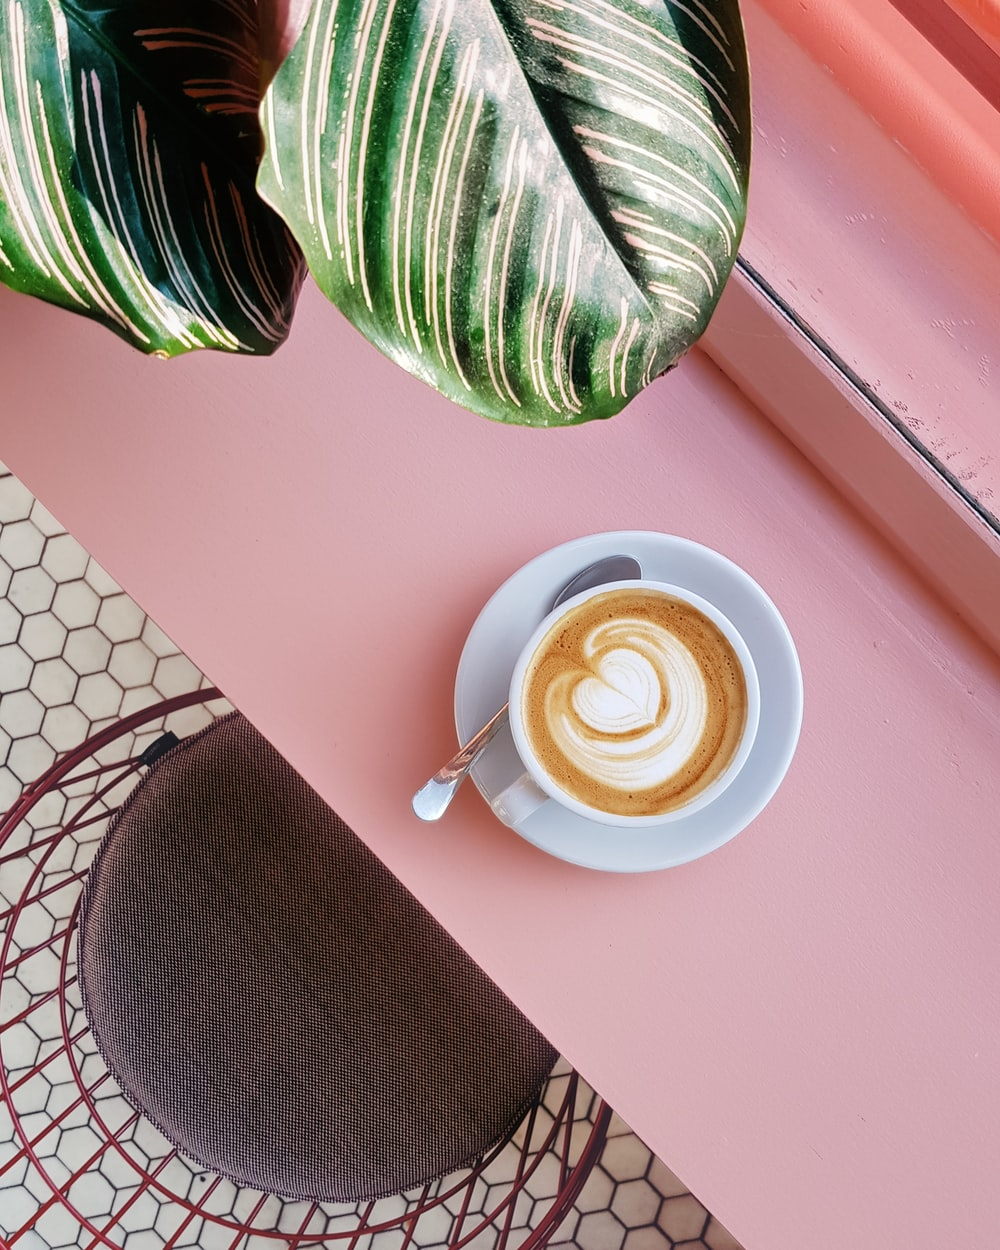 cup of coffee on saucer with teaspoon on pink tabletop